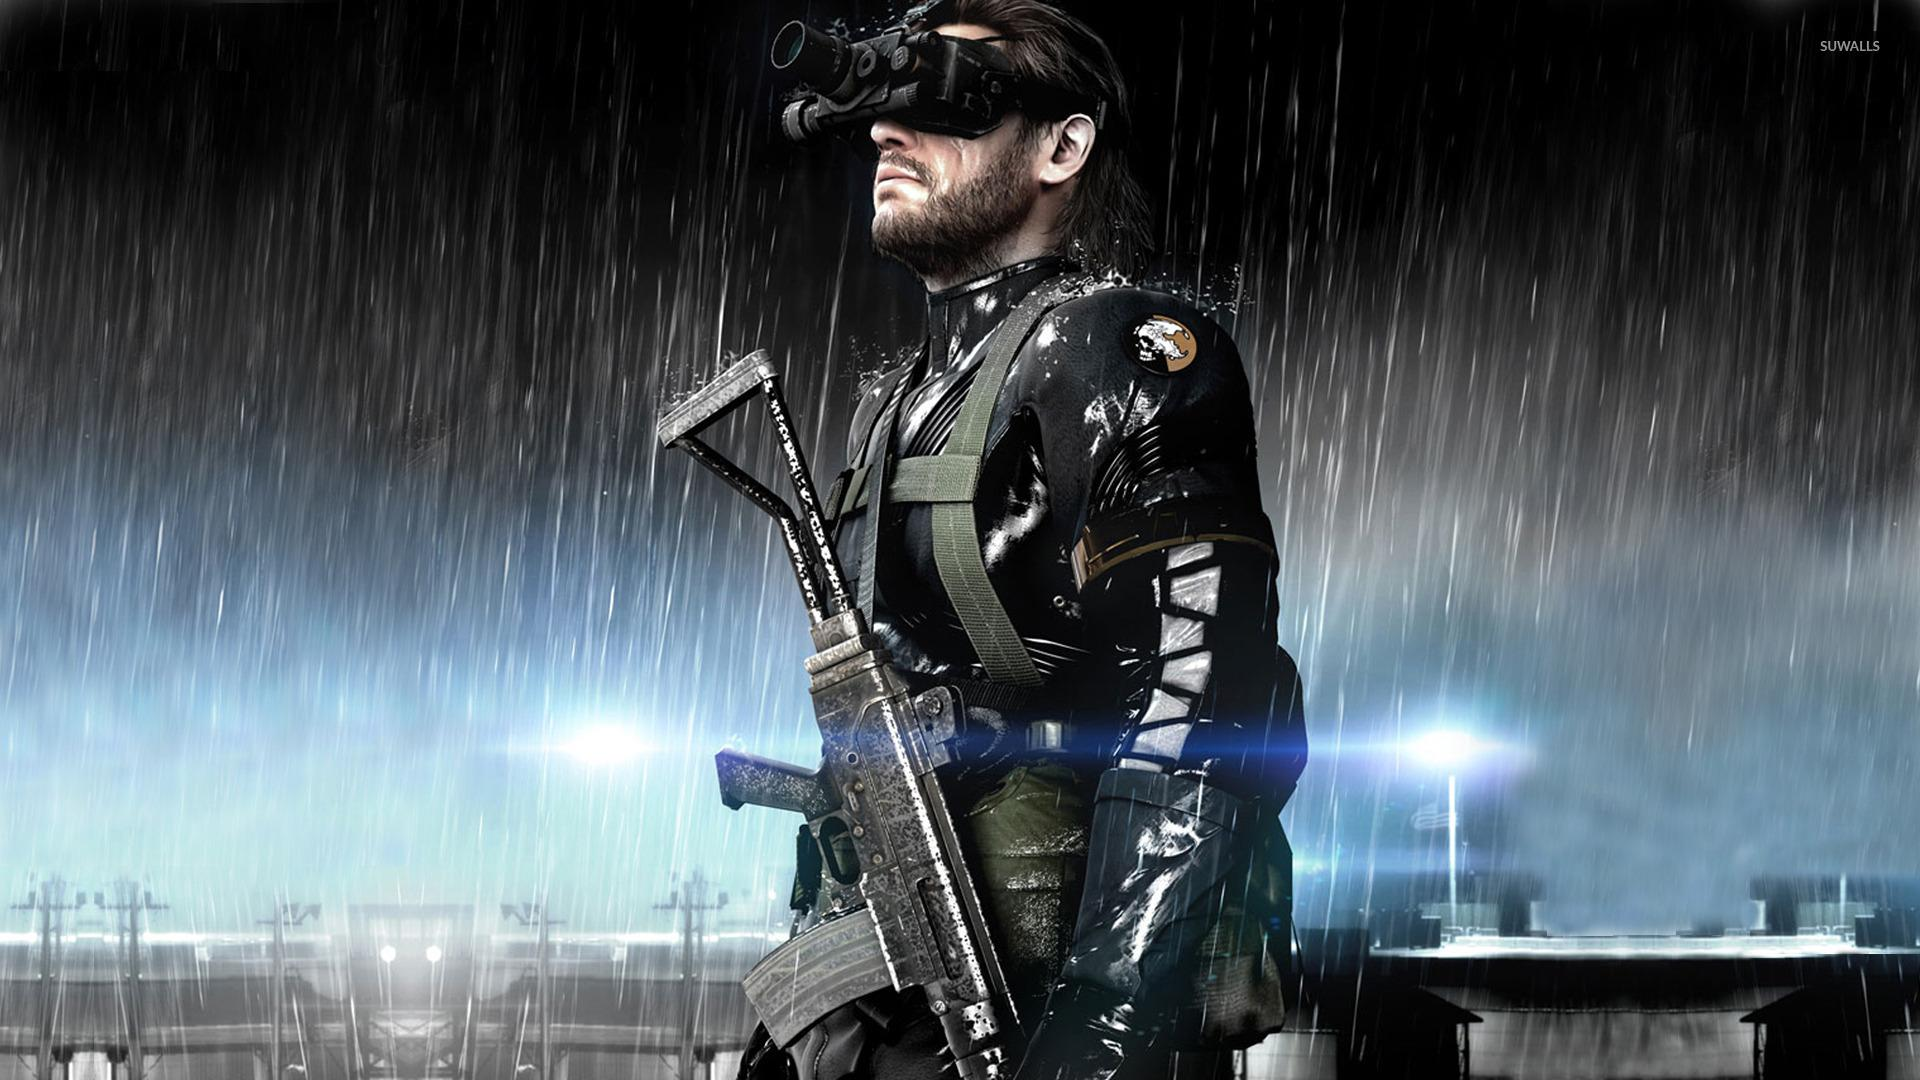 Metal Gear Solid 2: Sons Of Liberty Wallpapers - Wallpaper ...